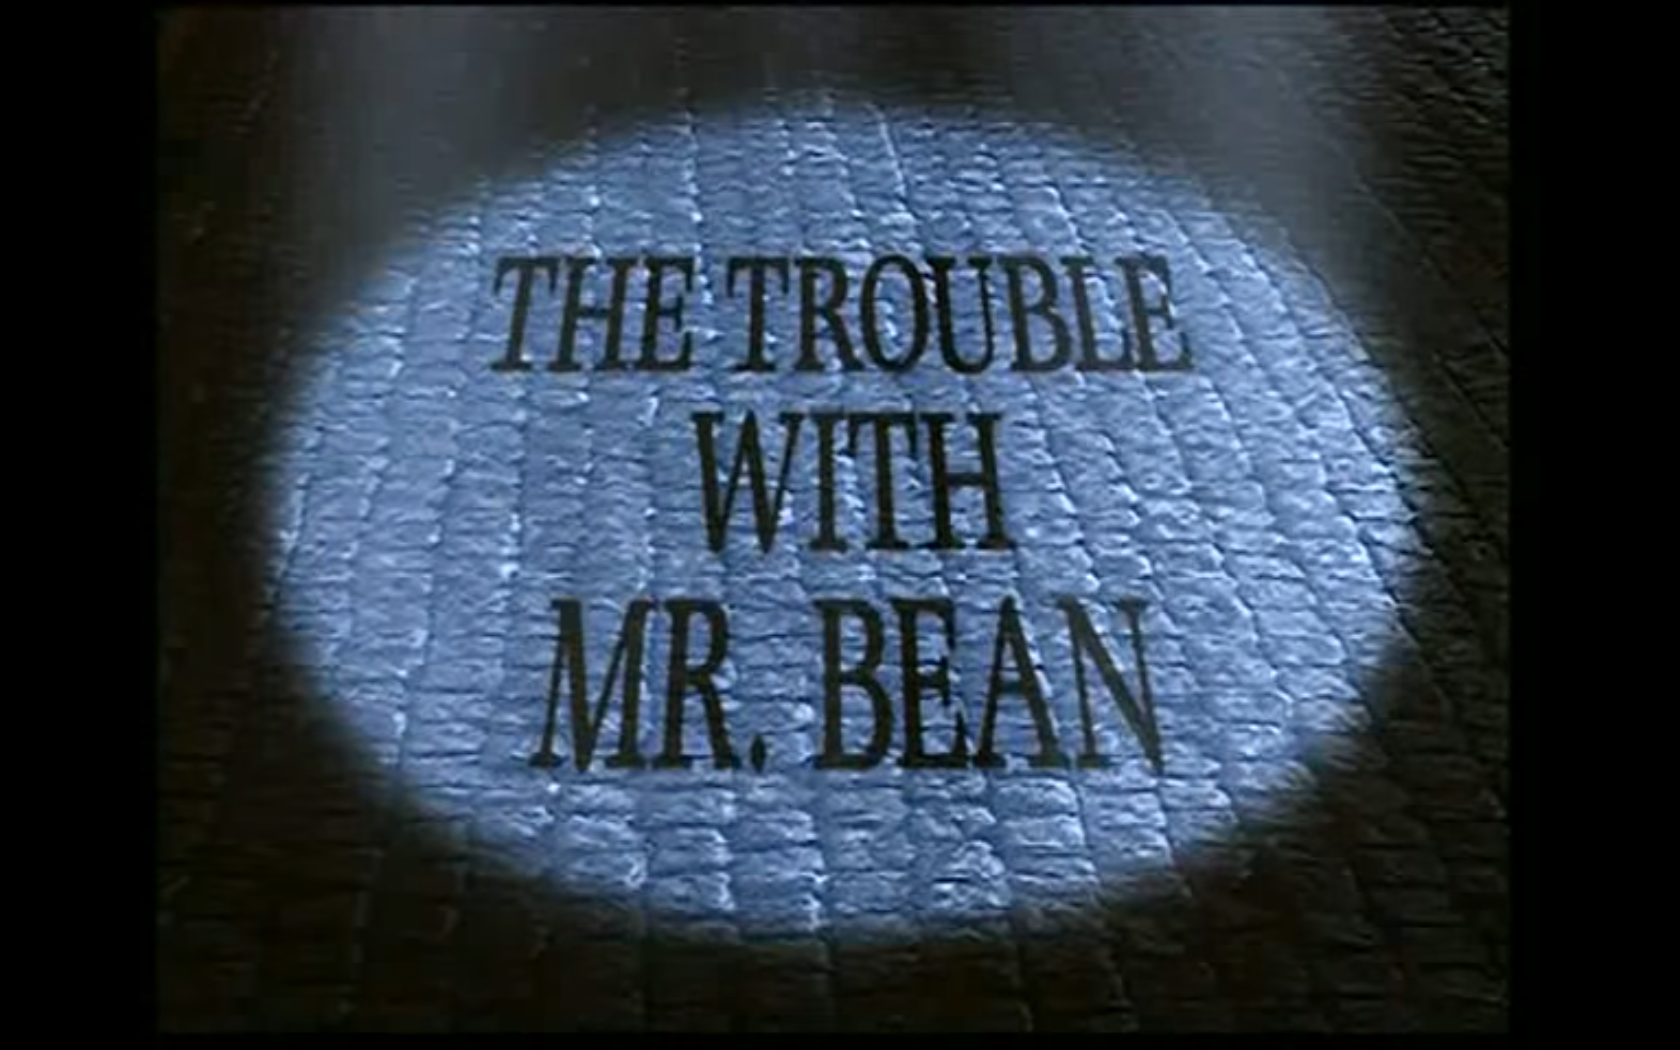 The trouble with mr bean mr bean wiki fandom powered by wikia the trouble with mr bean solutioingenieria Images